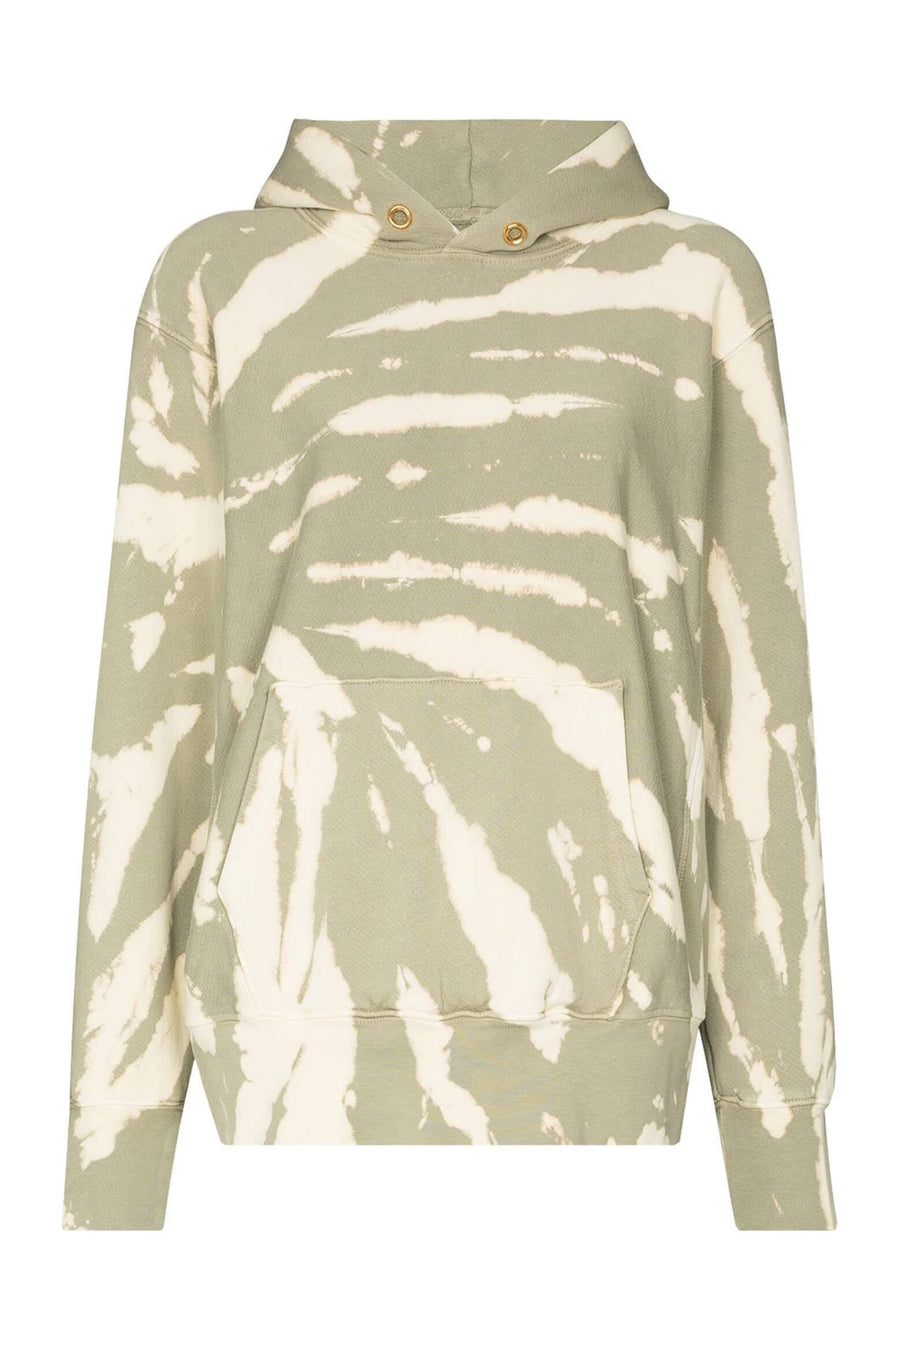 Les Tien Cropped Hoodie Sage Tie Dye from The New Trend